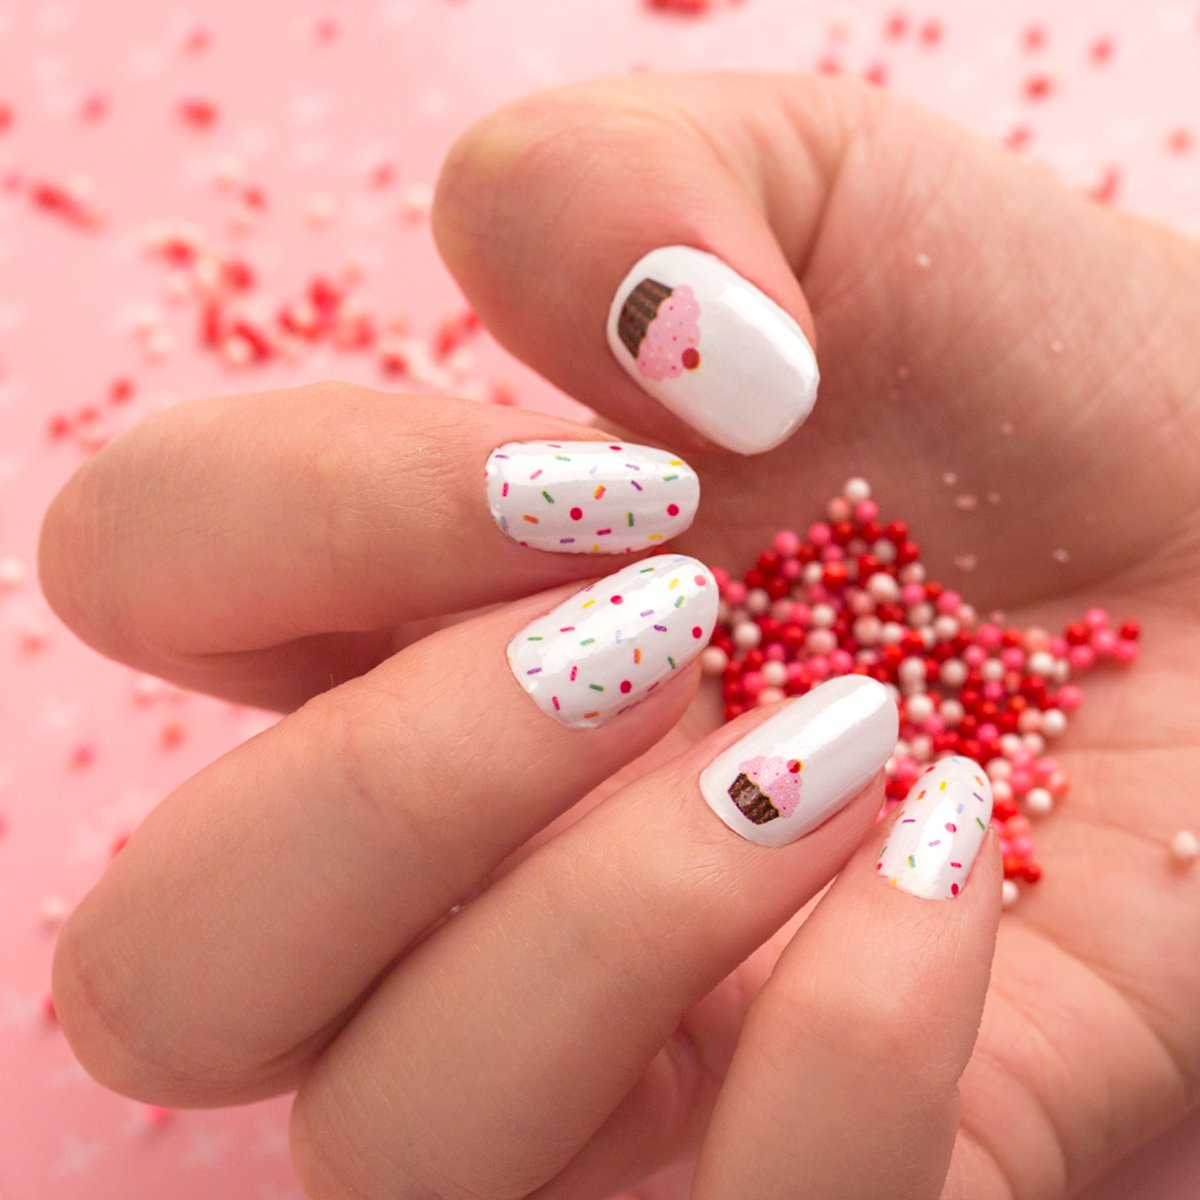 Color Street On Twitter Add A Dash Of Sweetness To Your Nails